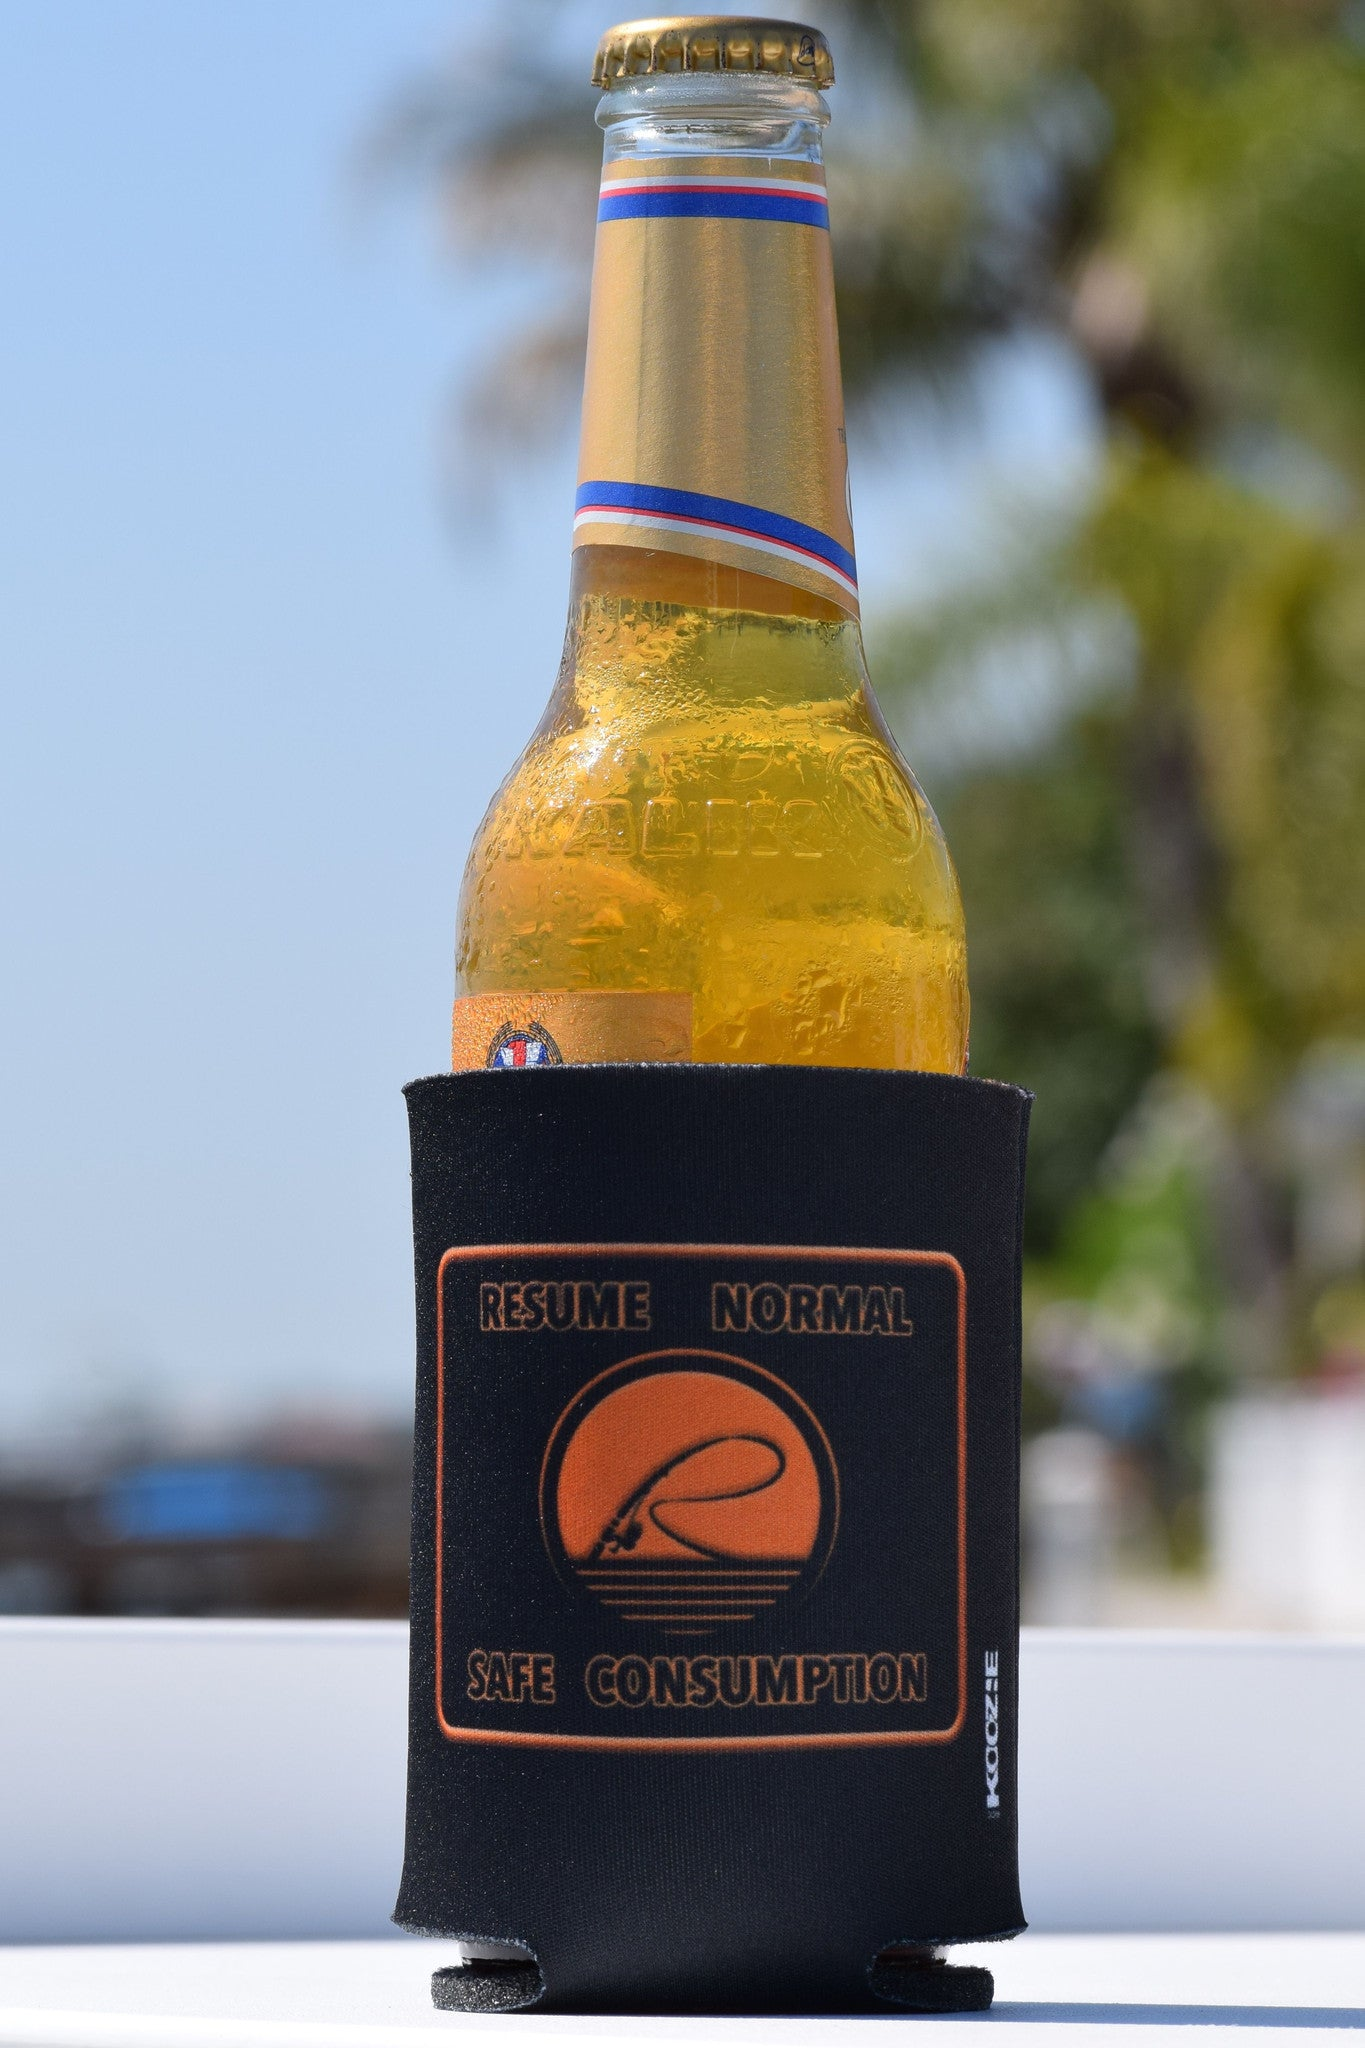 Resume Normal Safe Consumption Koozie - Reelaxed Apparel